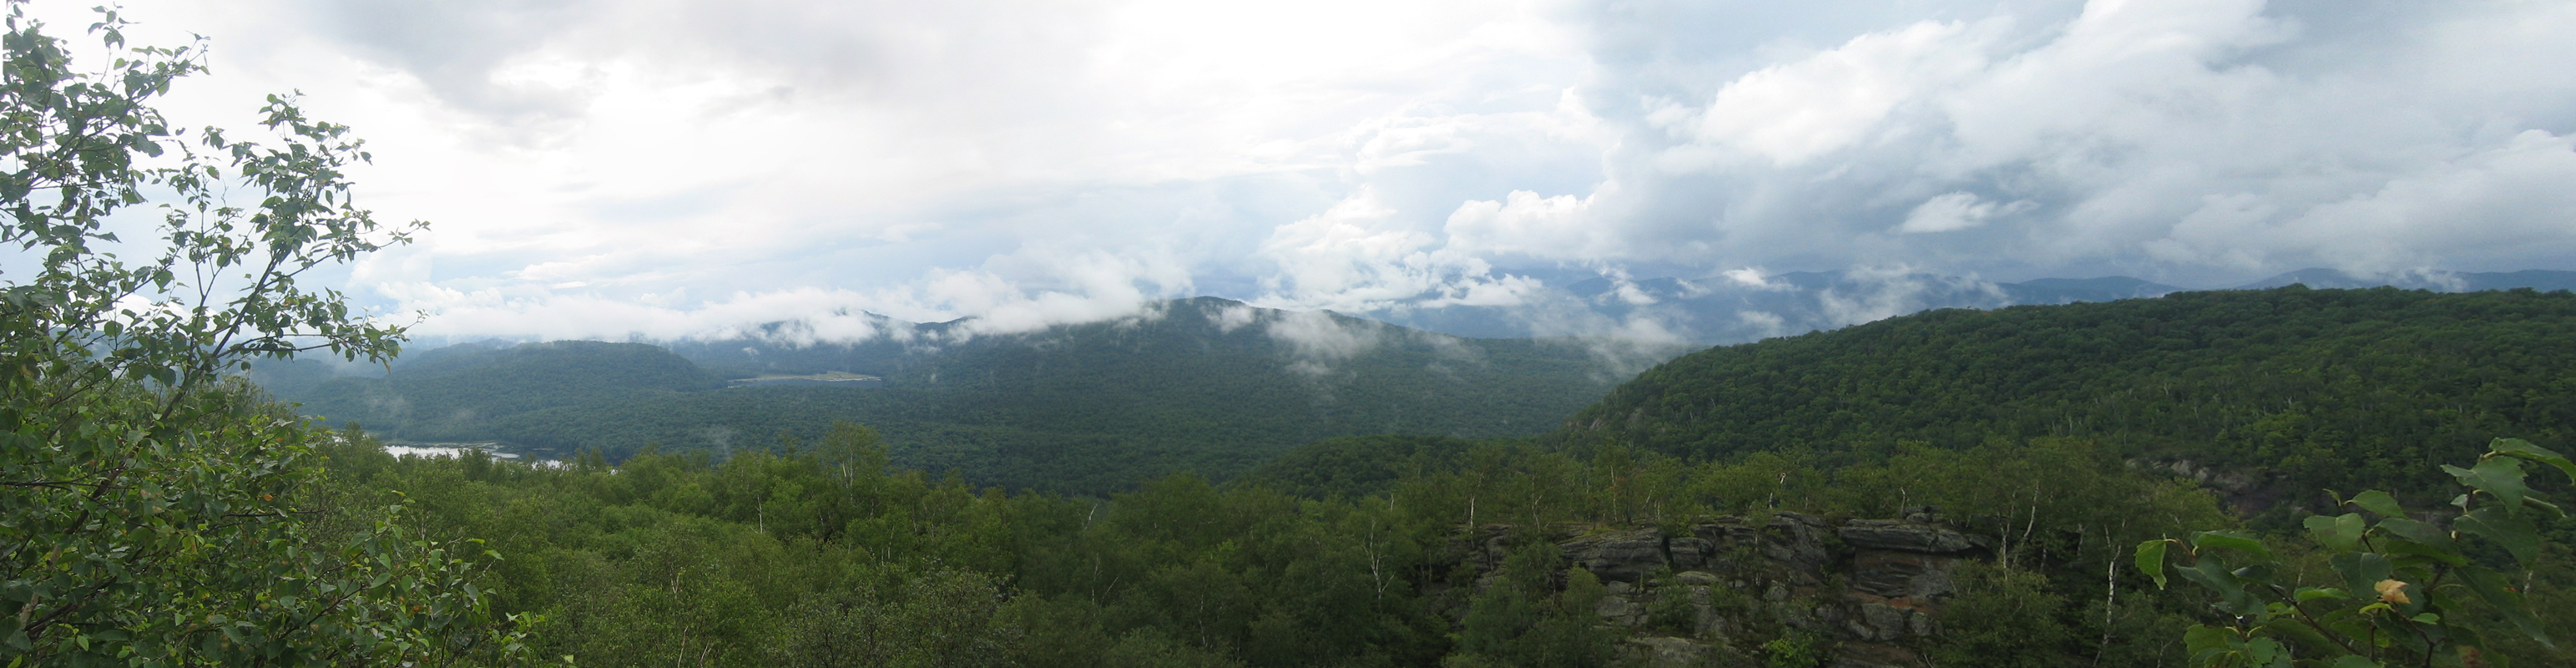 Chimney Mountain Panoramic View